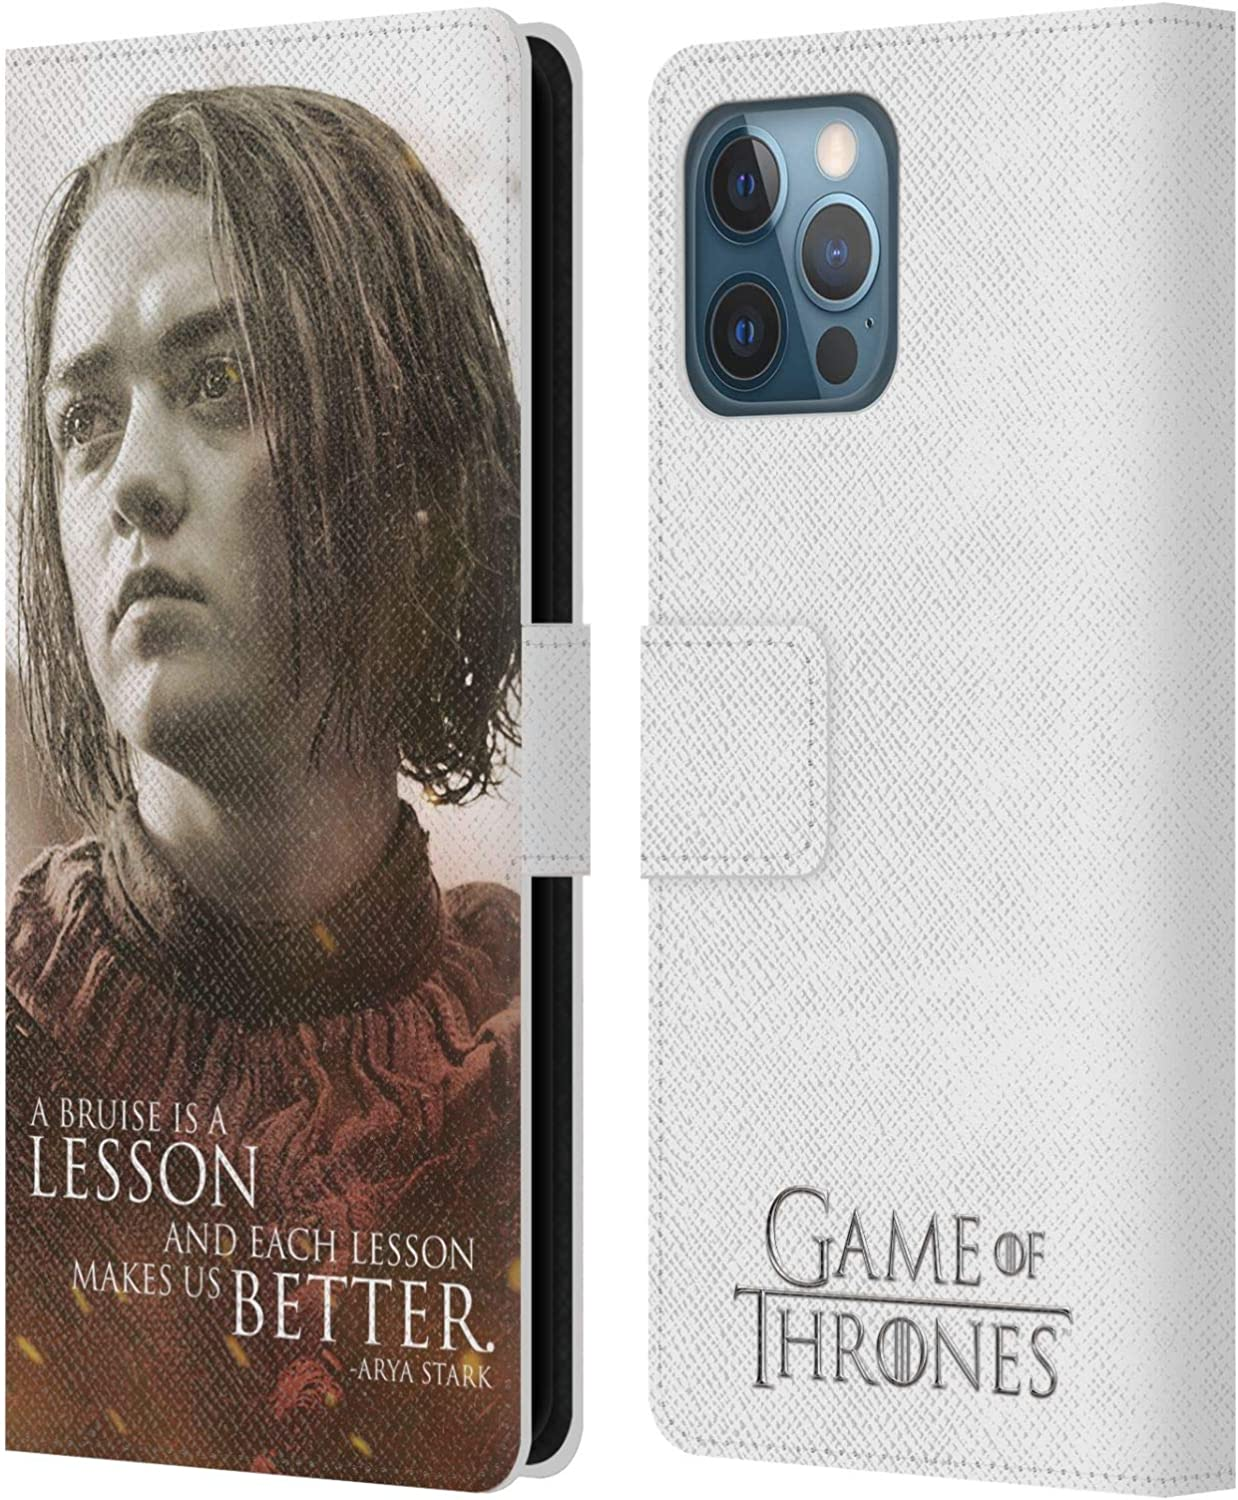 Head Case Designs Officially Licensed HBO Game of Thrones Arya Stark Character Portraits Leather Book Wallet Case Cover Compatible with Apple iPhone 12 Pro Max